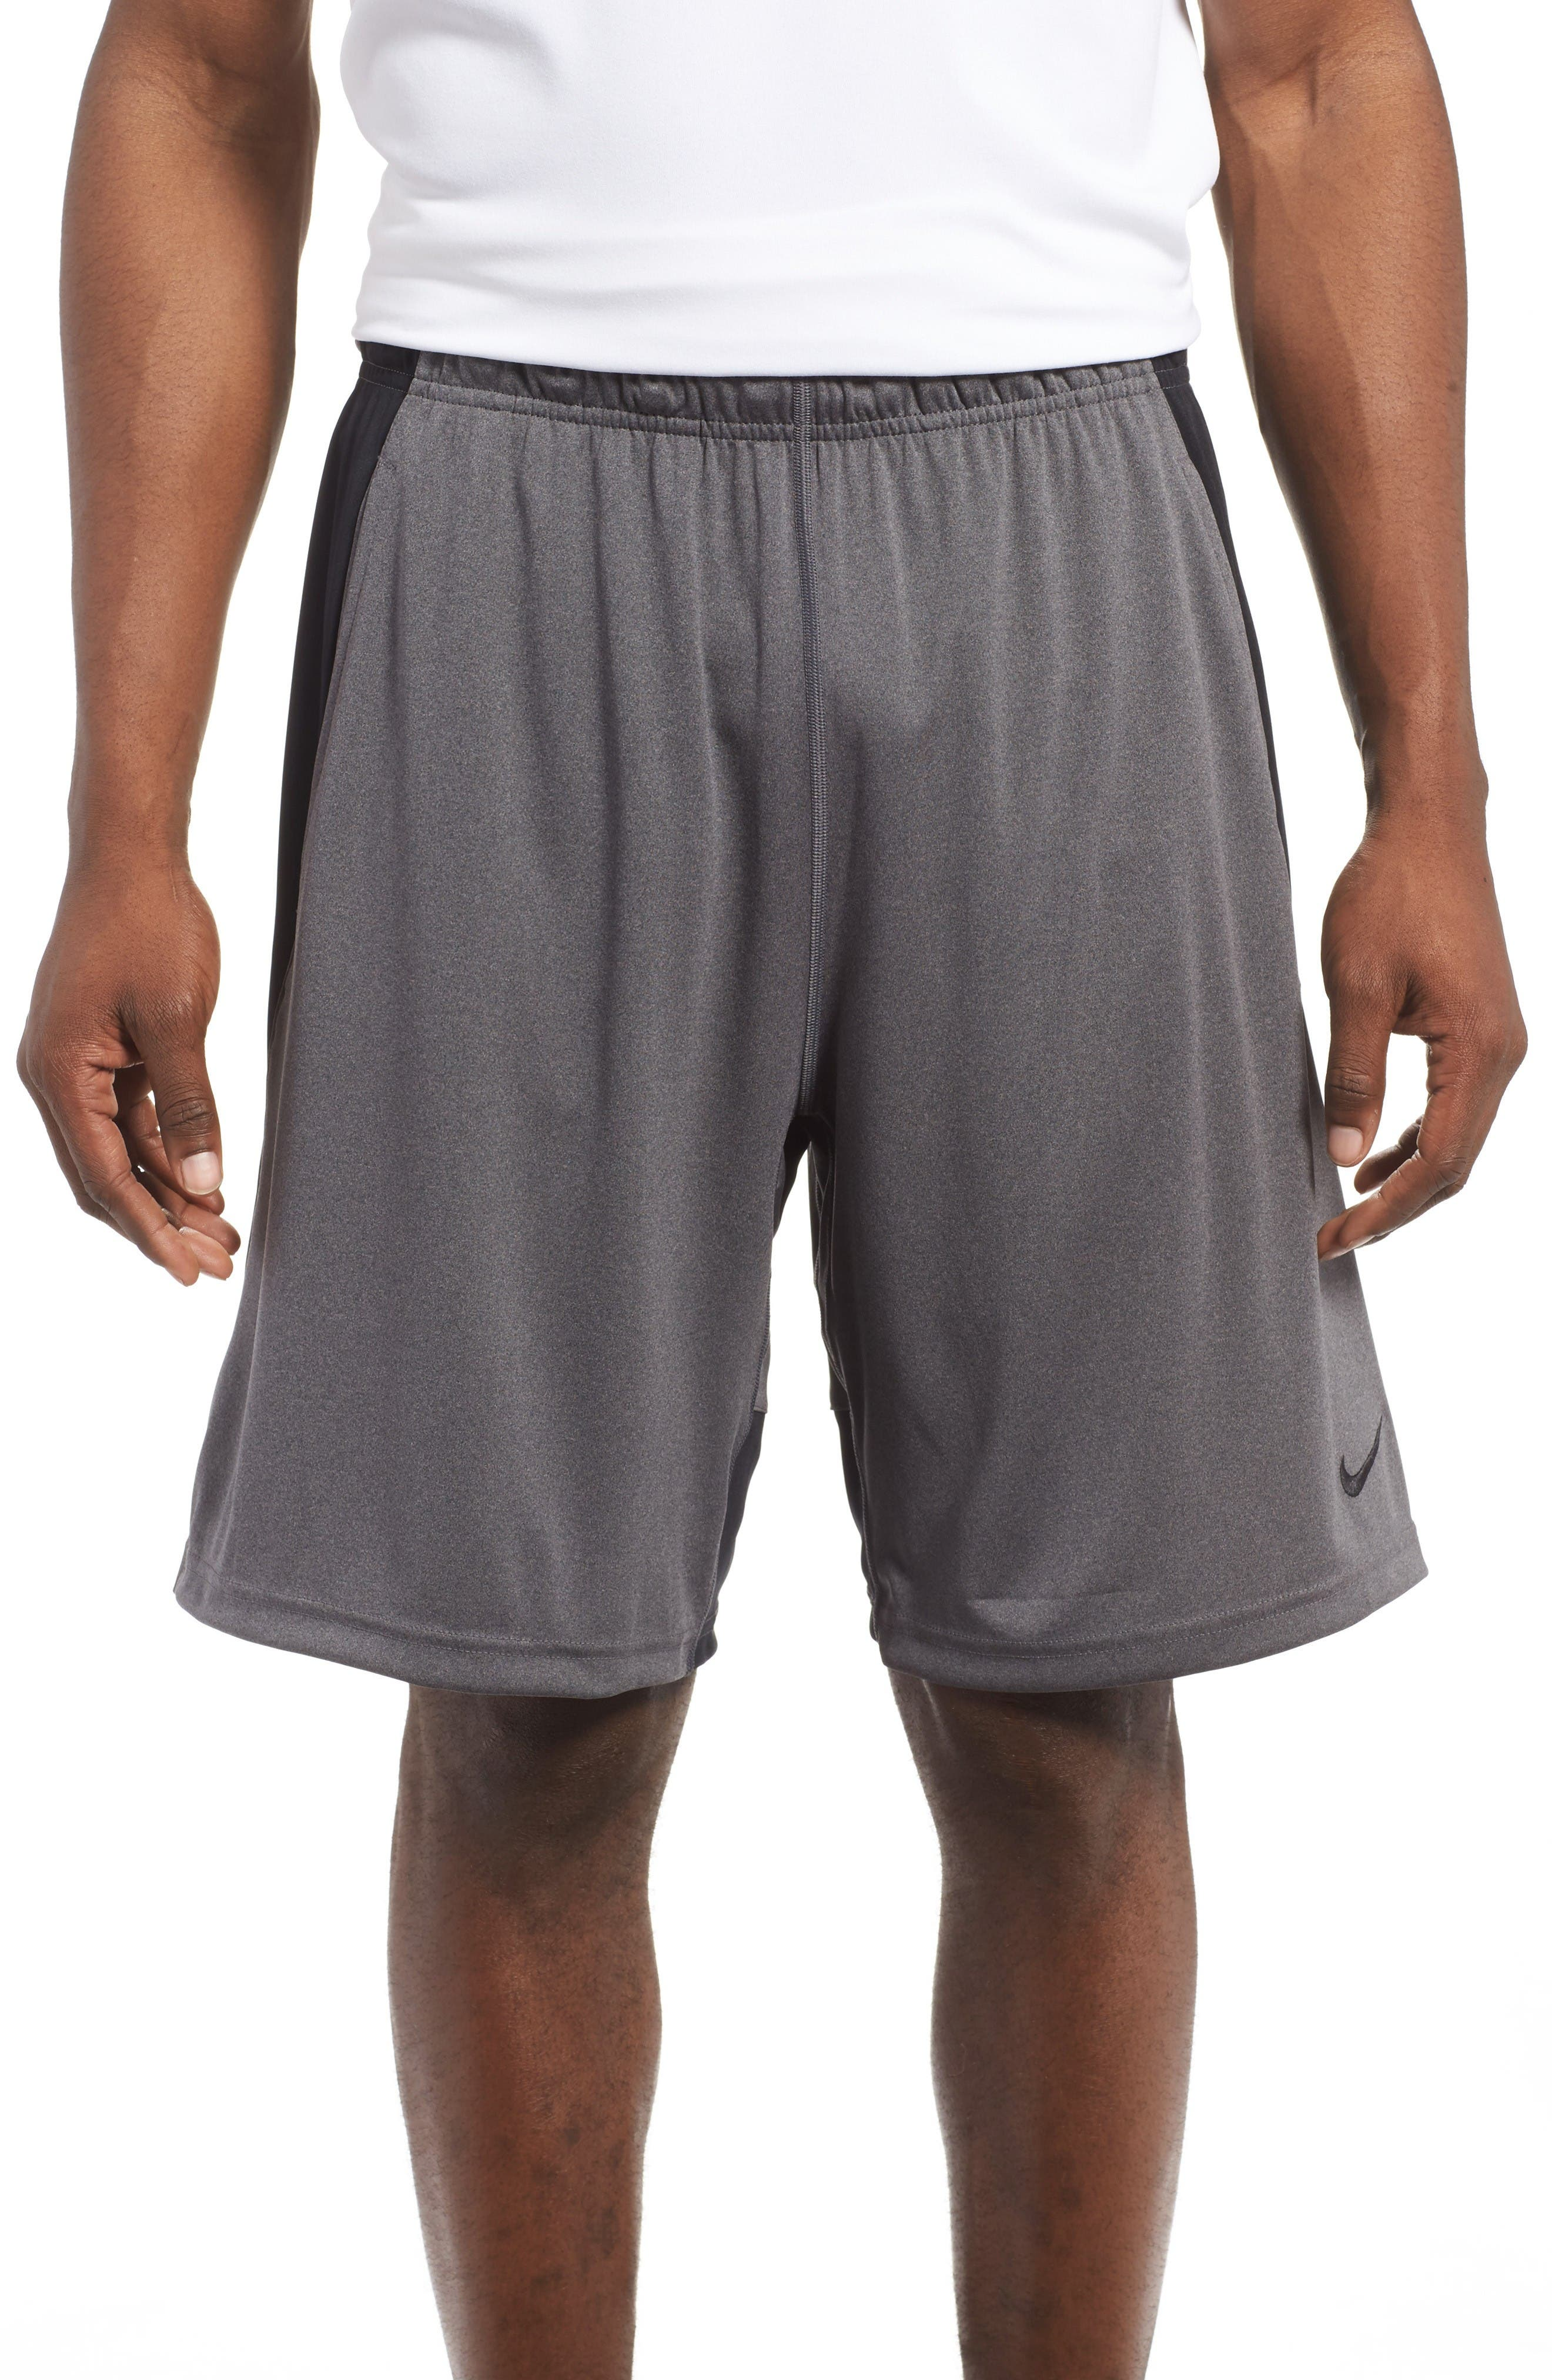 Main Image - Nike 'Fly' Dri-FIT Training Shorts